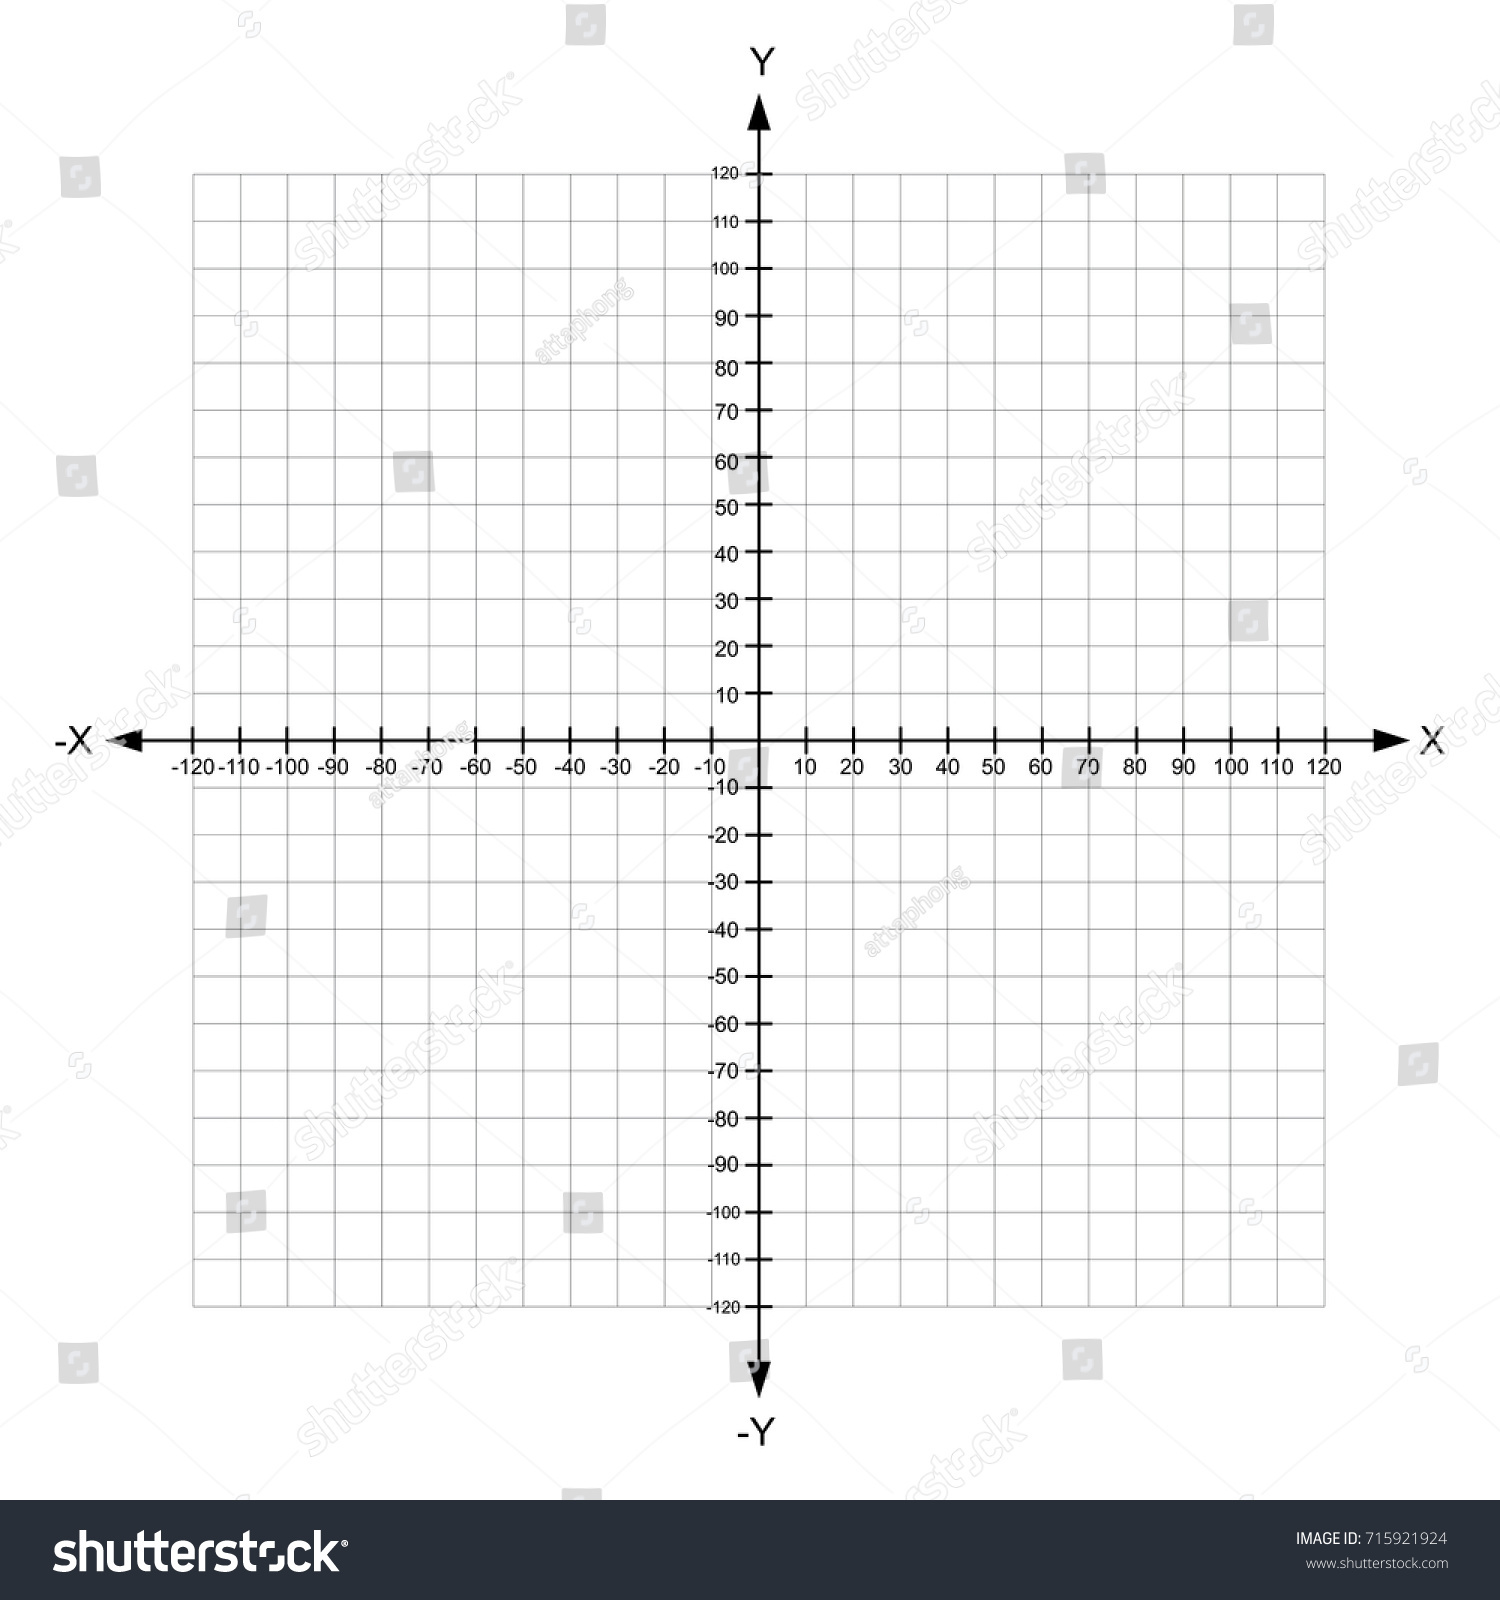 worksheet Graph Paper Xy Axis blank x y axis cartesian coordinate stock vector 715921924 and plane with numbers on white background illustration